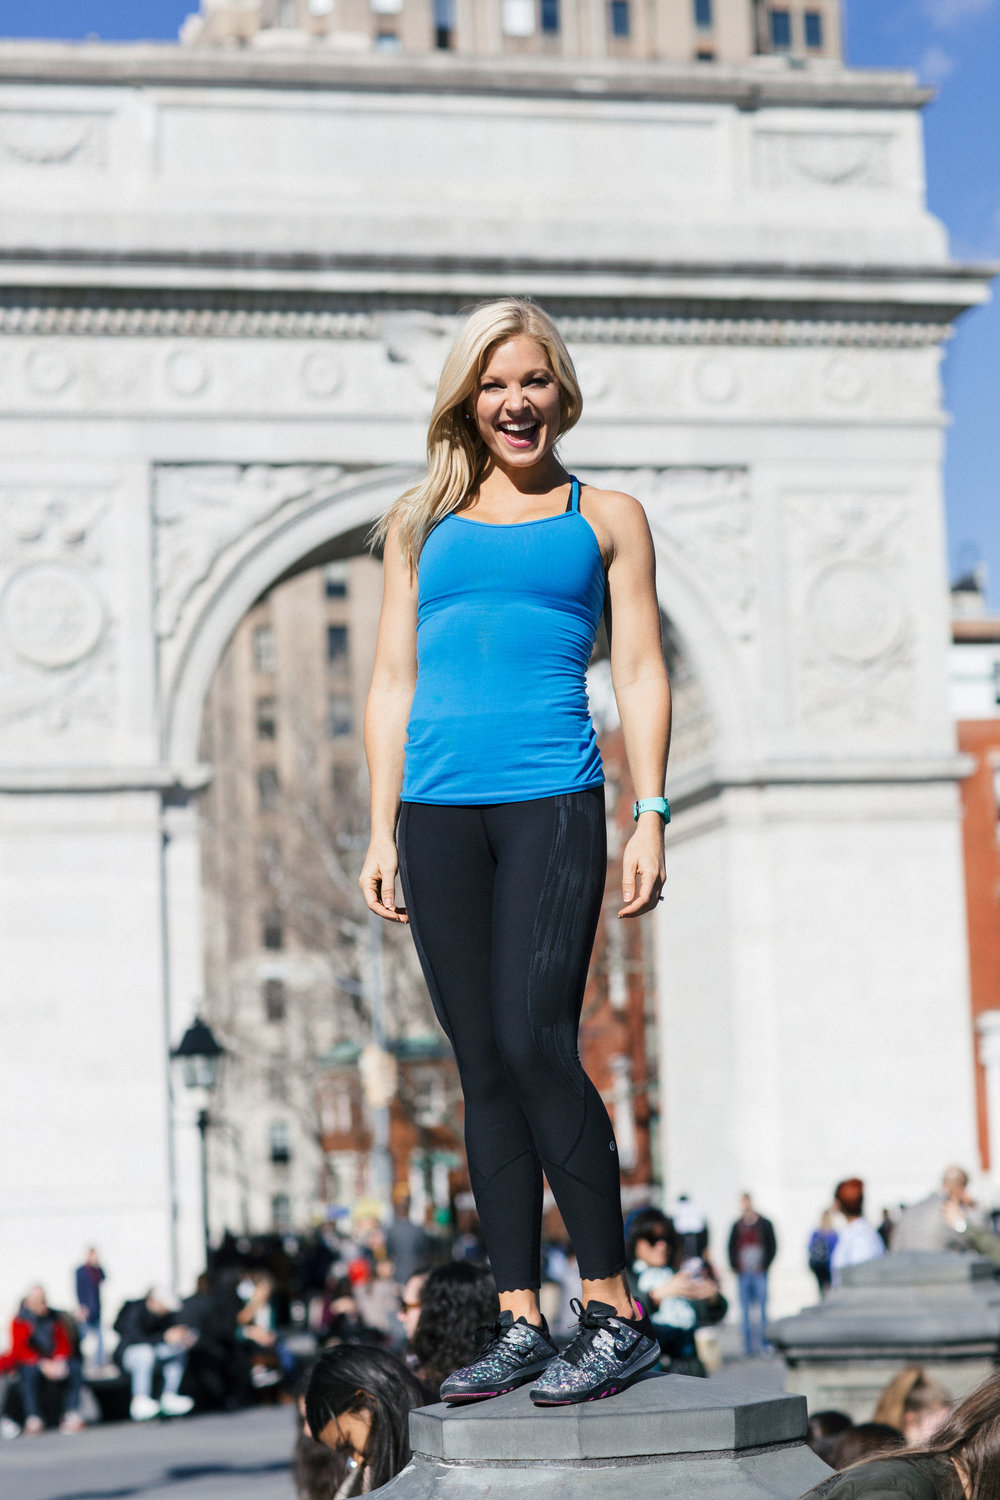 Anna Kooiman New York City Fitness Washington Square Park Standing on Fountain Lydia Hudgens